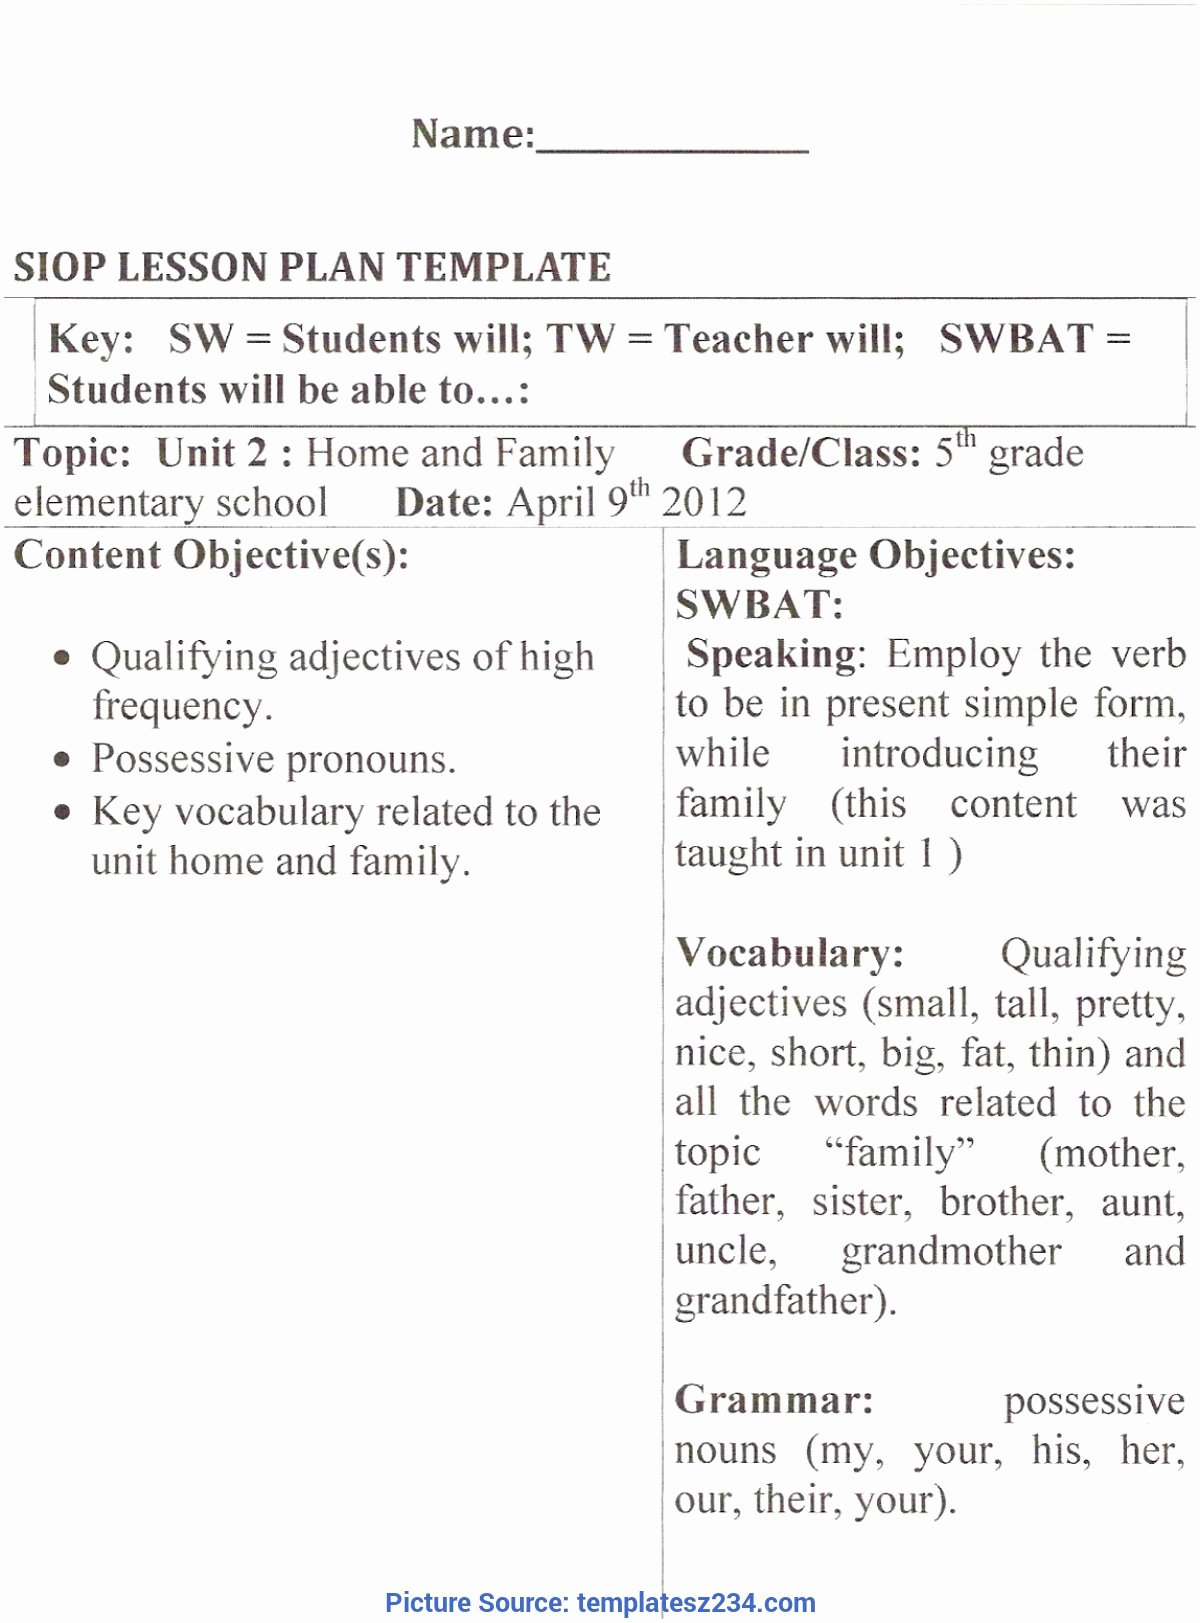 Siop Lesson Plan Template 2 Elegant Valuable Infant Lesson Plans for Valentine S Day Moon